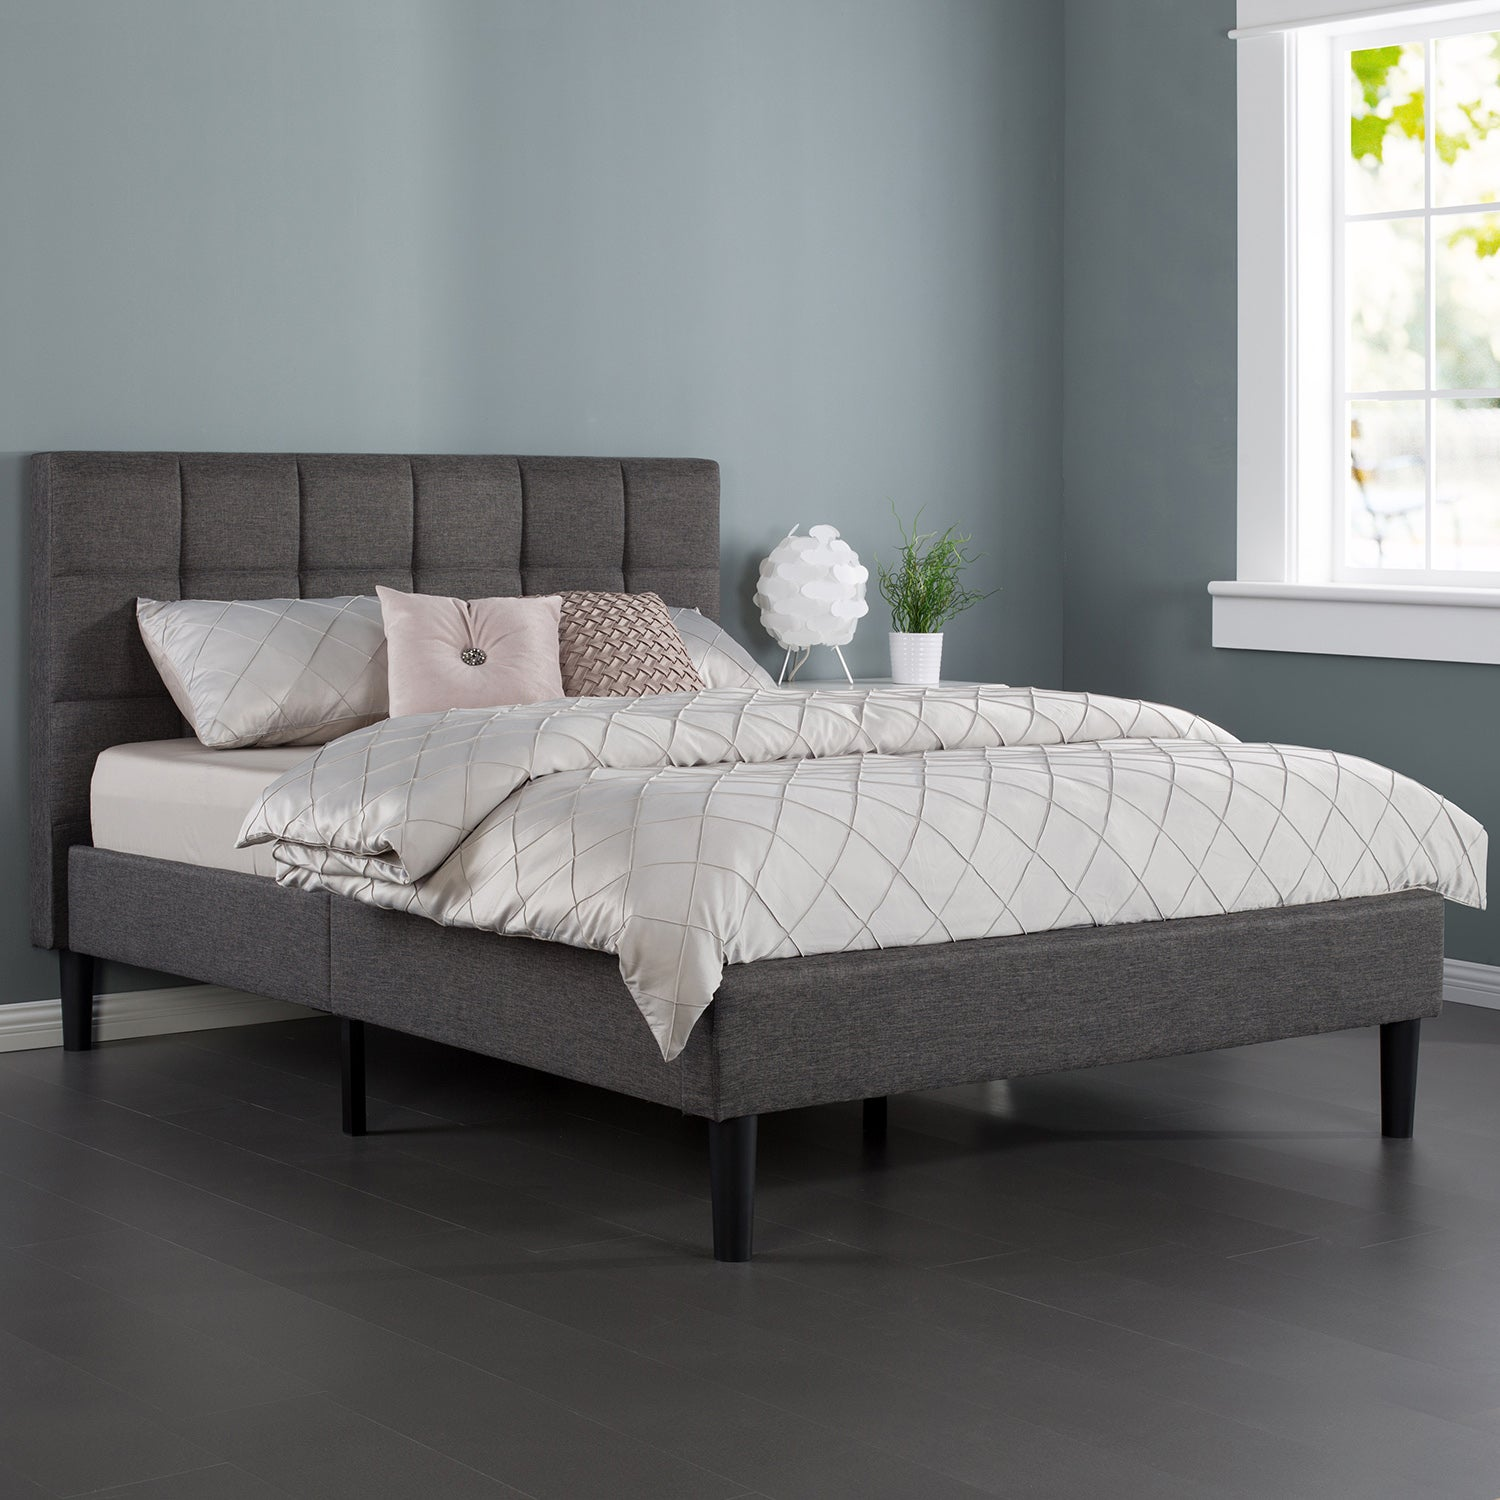 Zinus Classic Upholstered Fabric Bed Frame Dark Grey